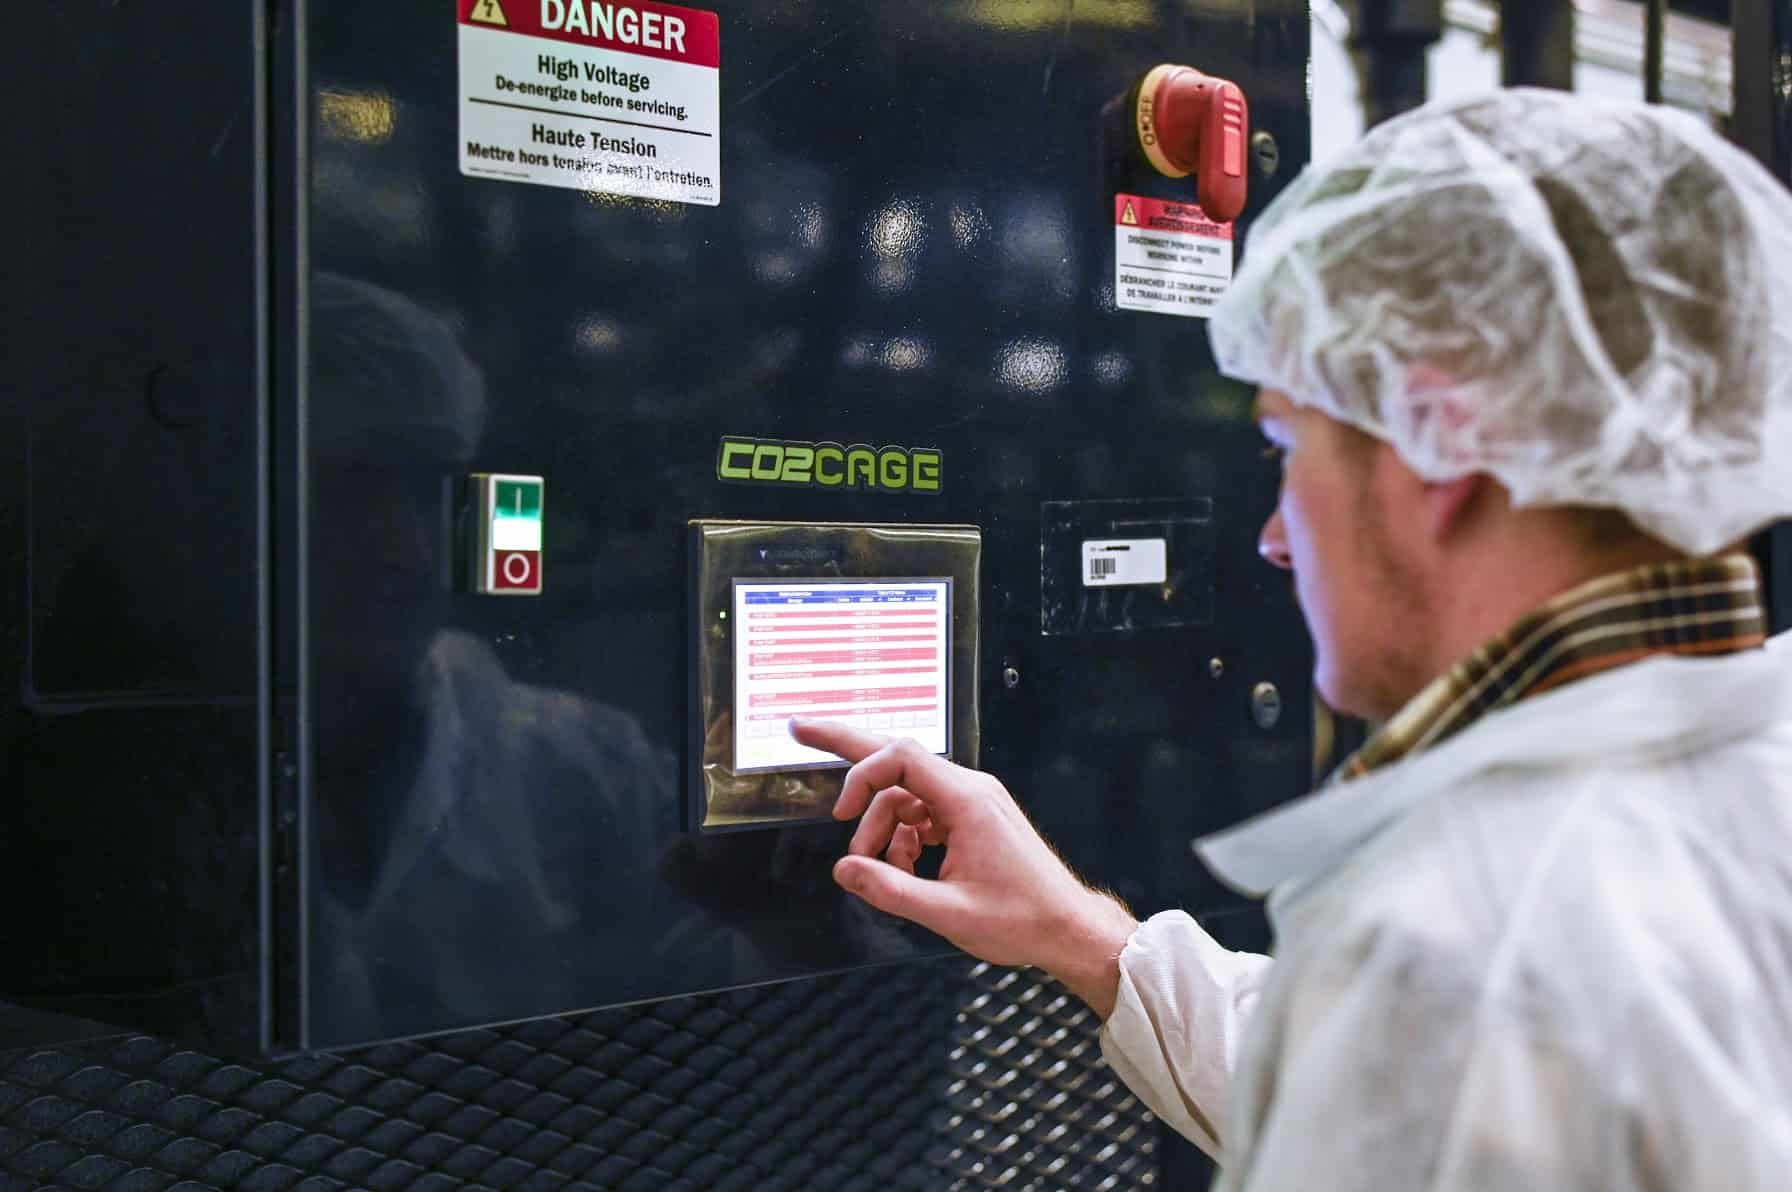 worker using CO2Cage